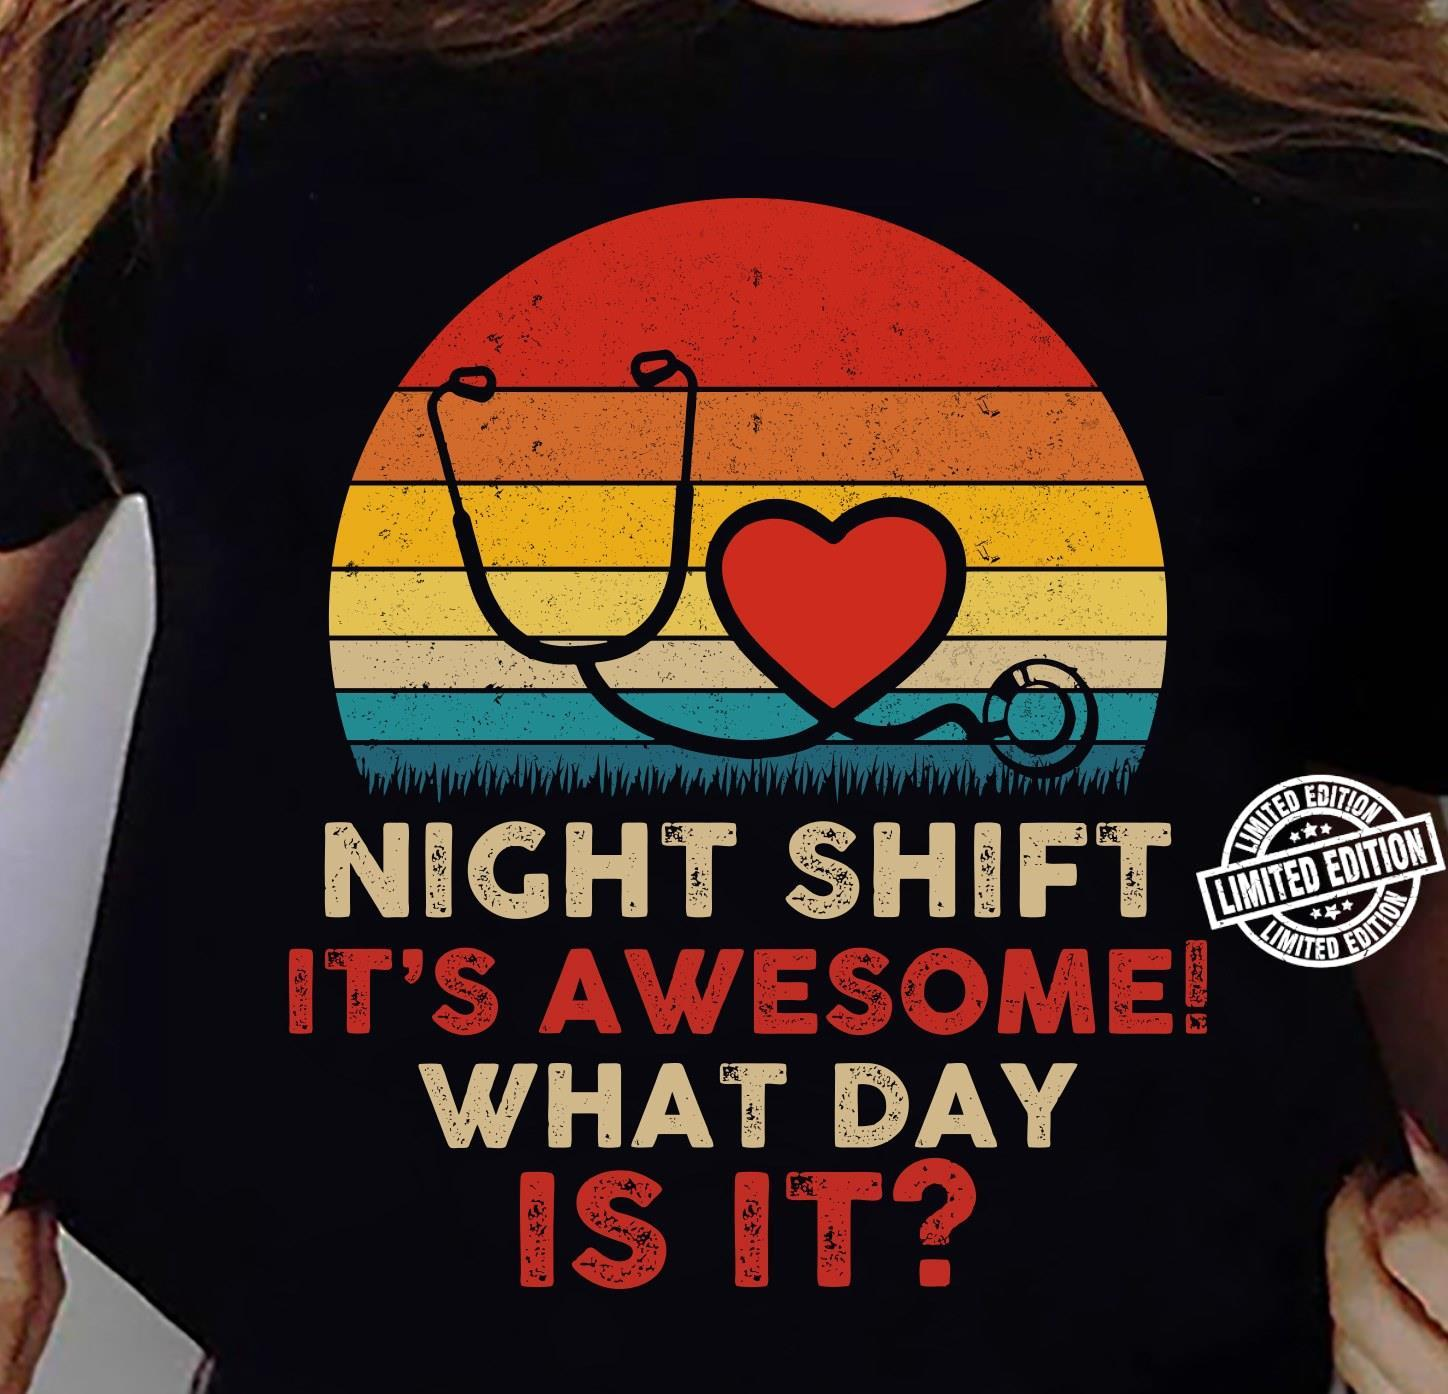 Night shift it's awesome what day is it shirt